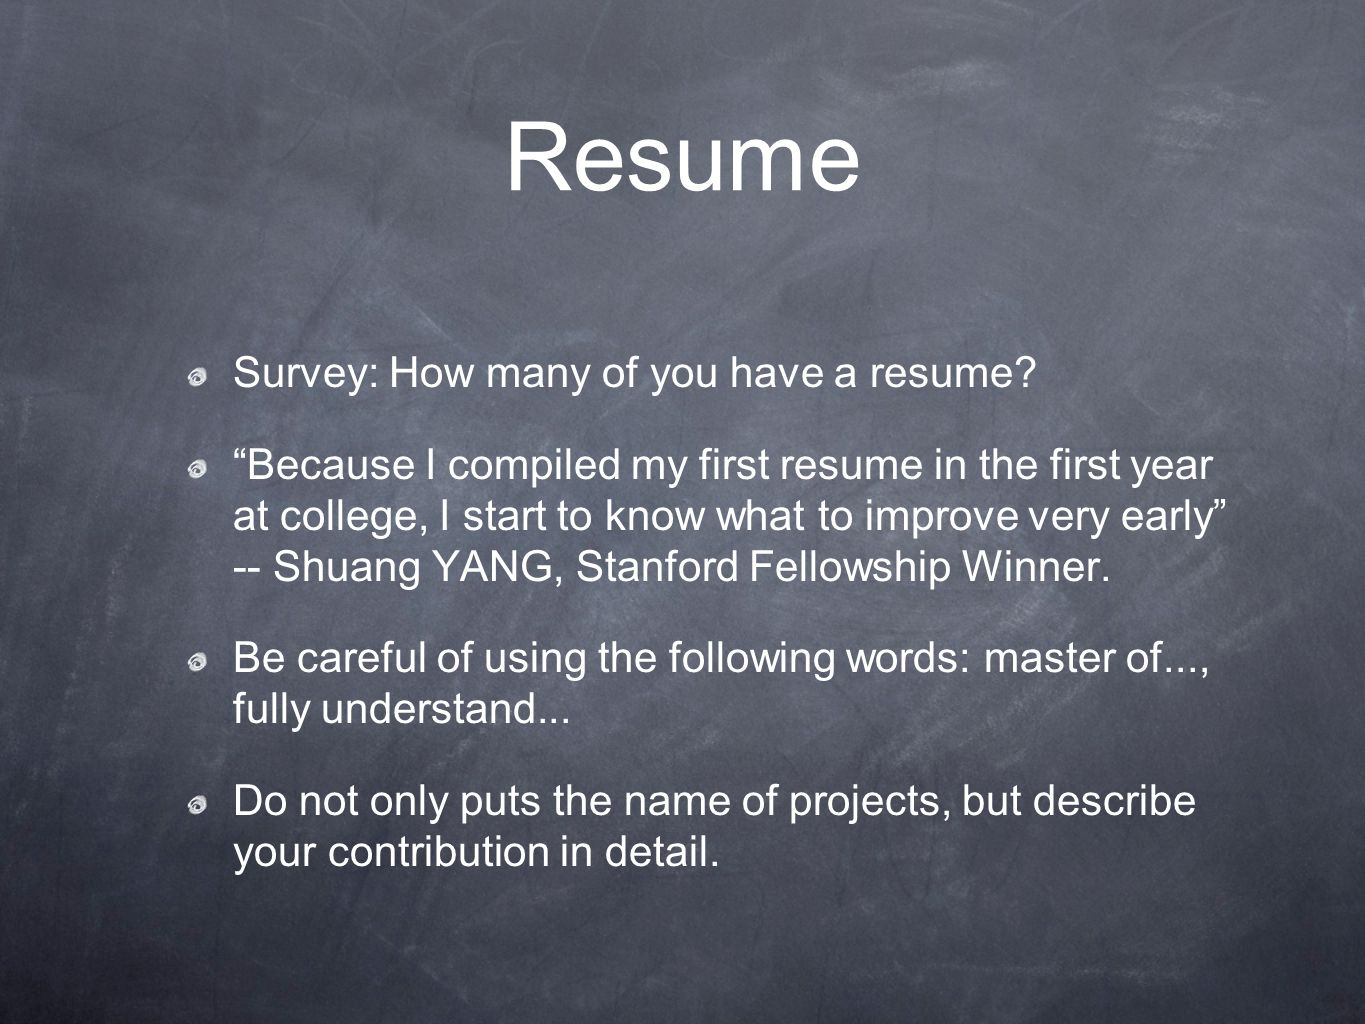 Resume Survey: How many of you have a resume.